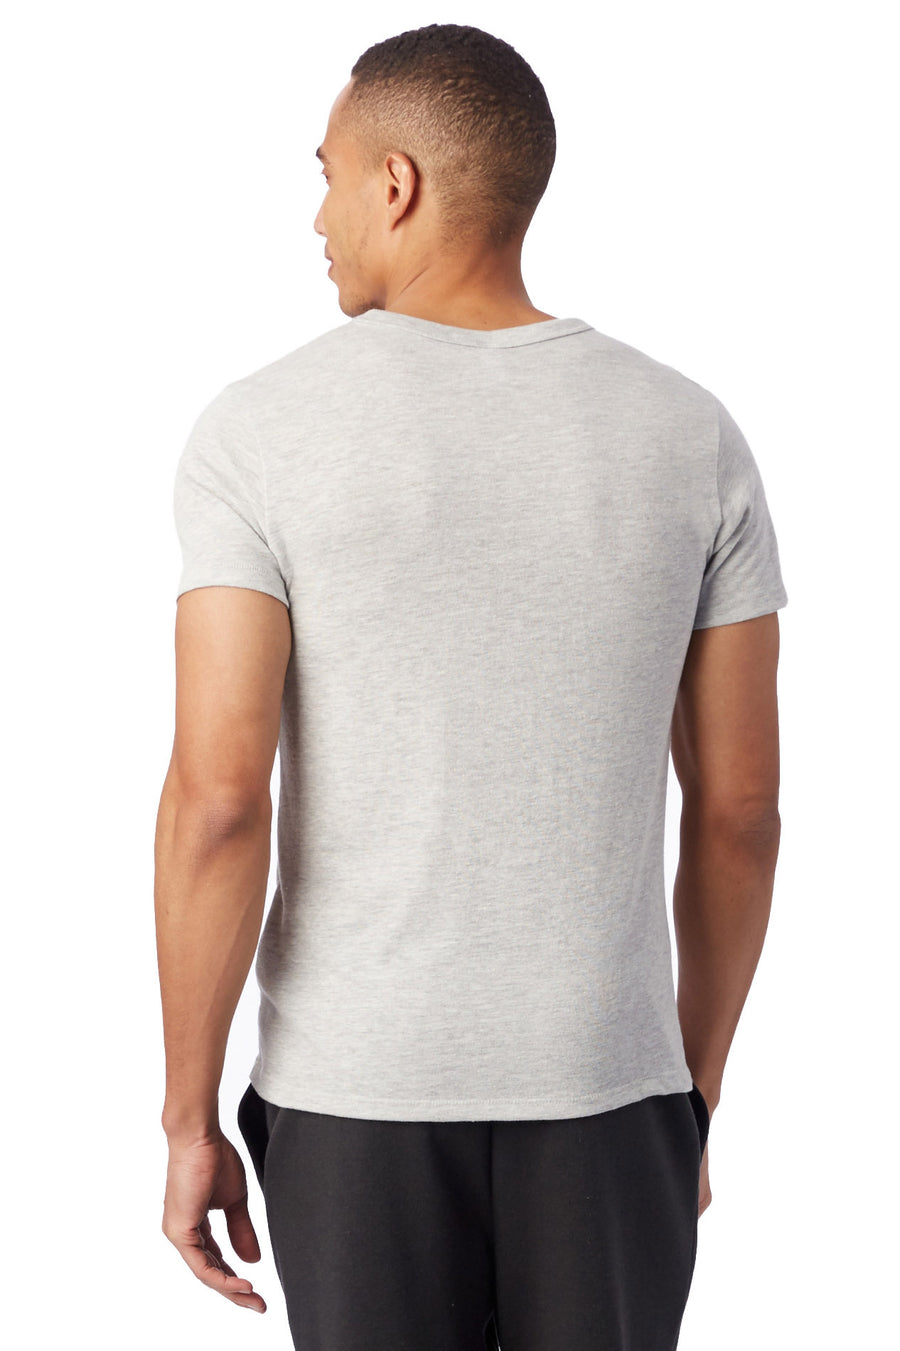 Eco Crew T-Shirt - Eco Light Grey - Pavilion